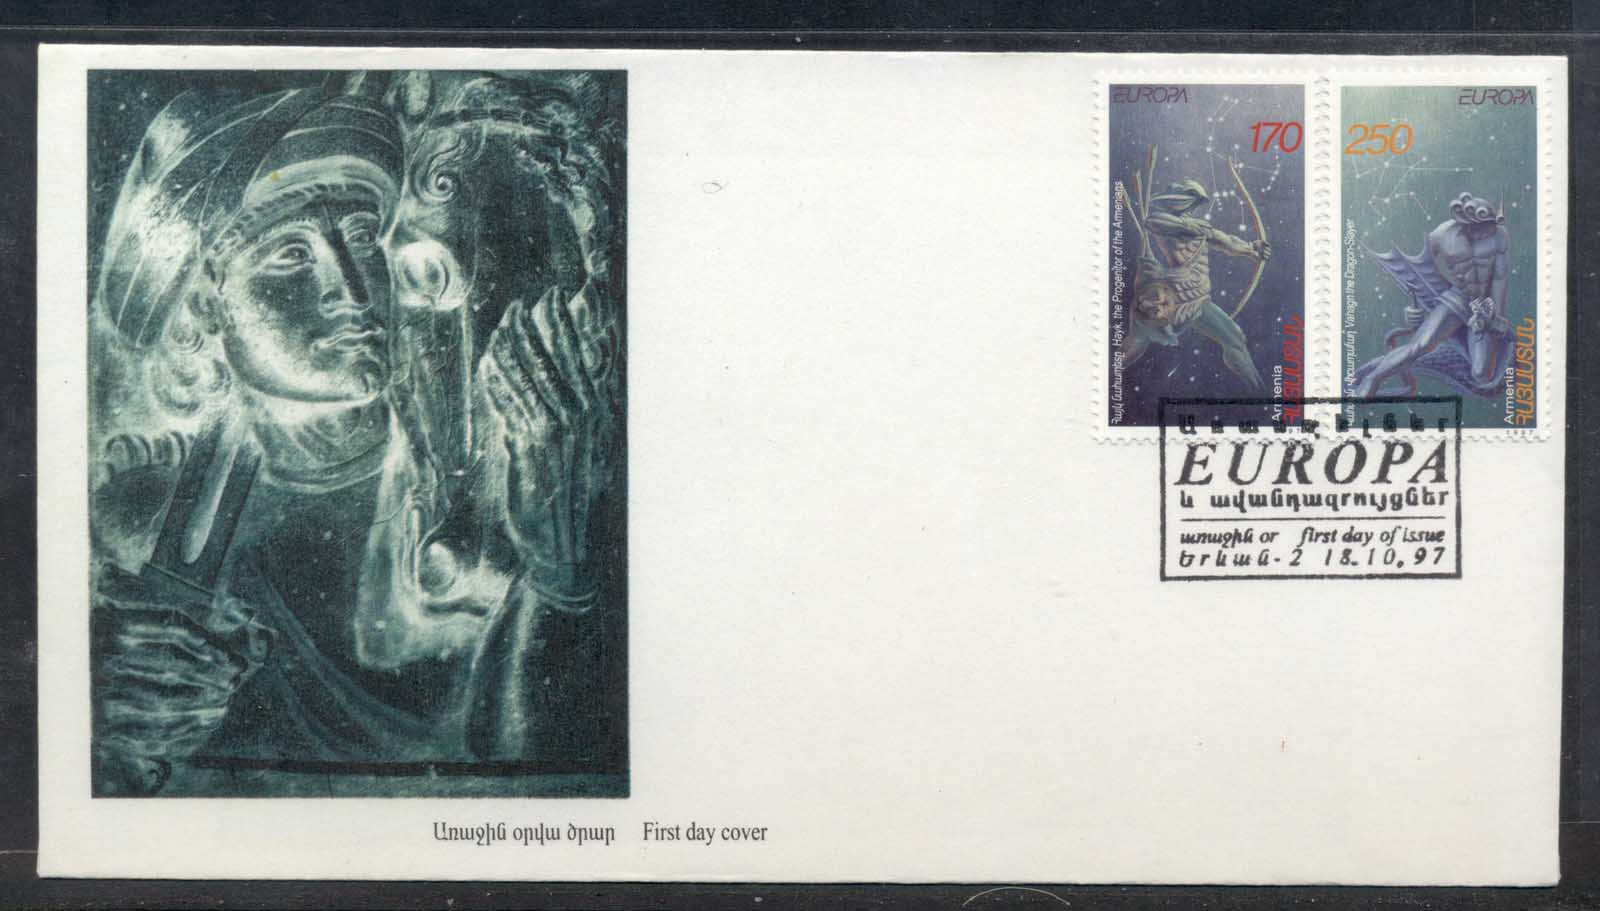 Armenia 1997 Europa Myths & legends FDC